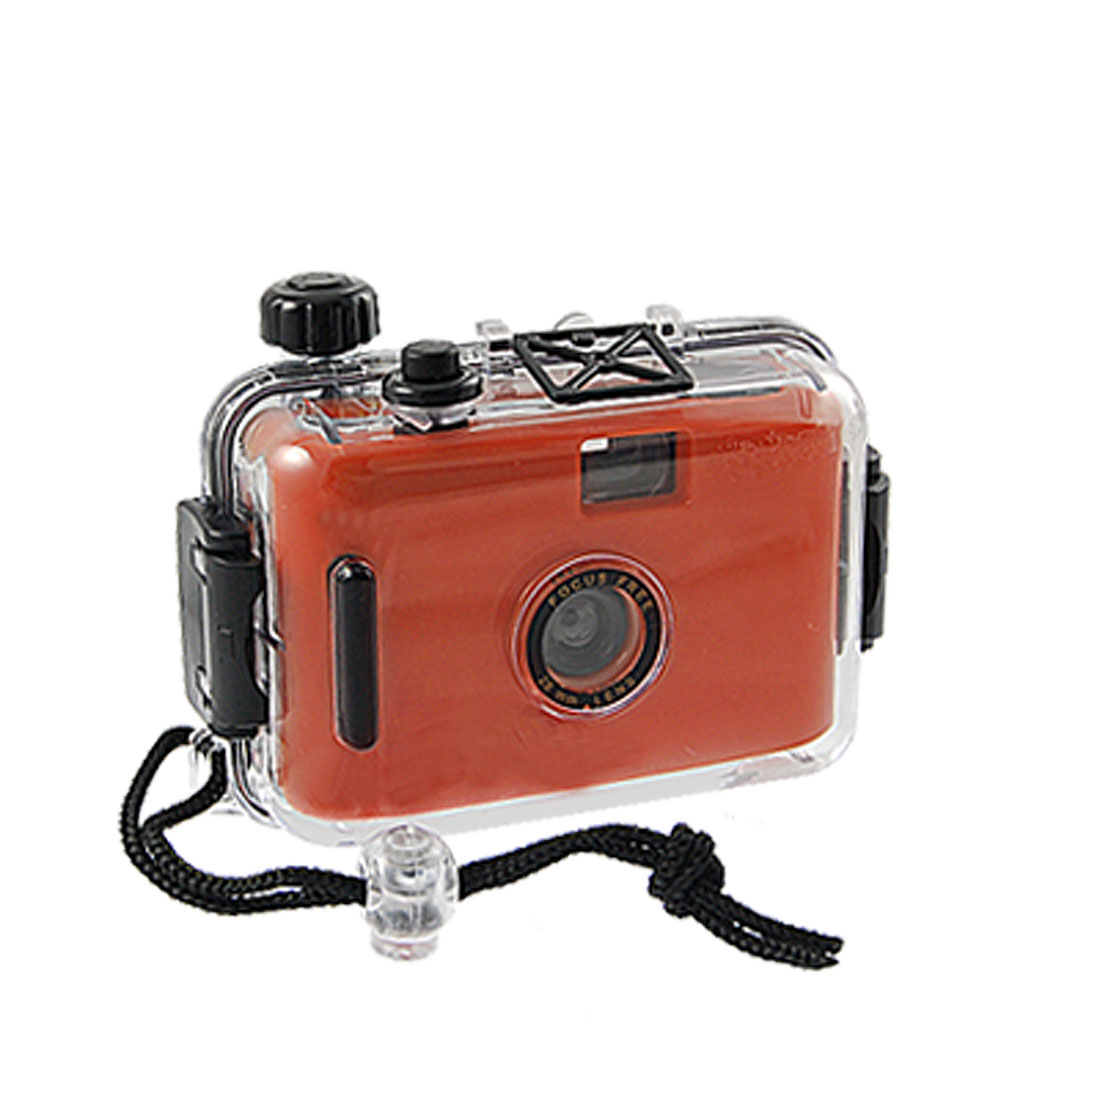 Kids Red Black Hard Plastic Clear Waterproof Casing Dummy Camera Toy